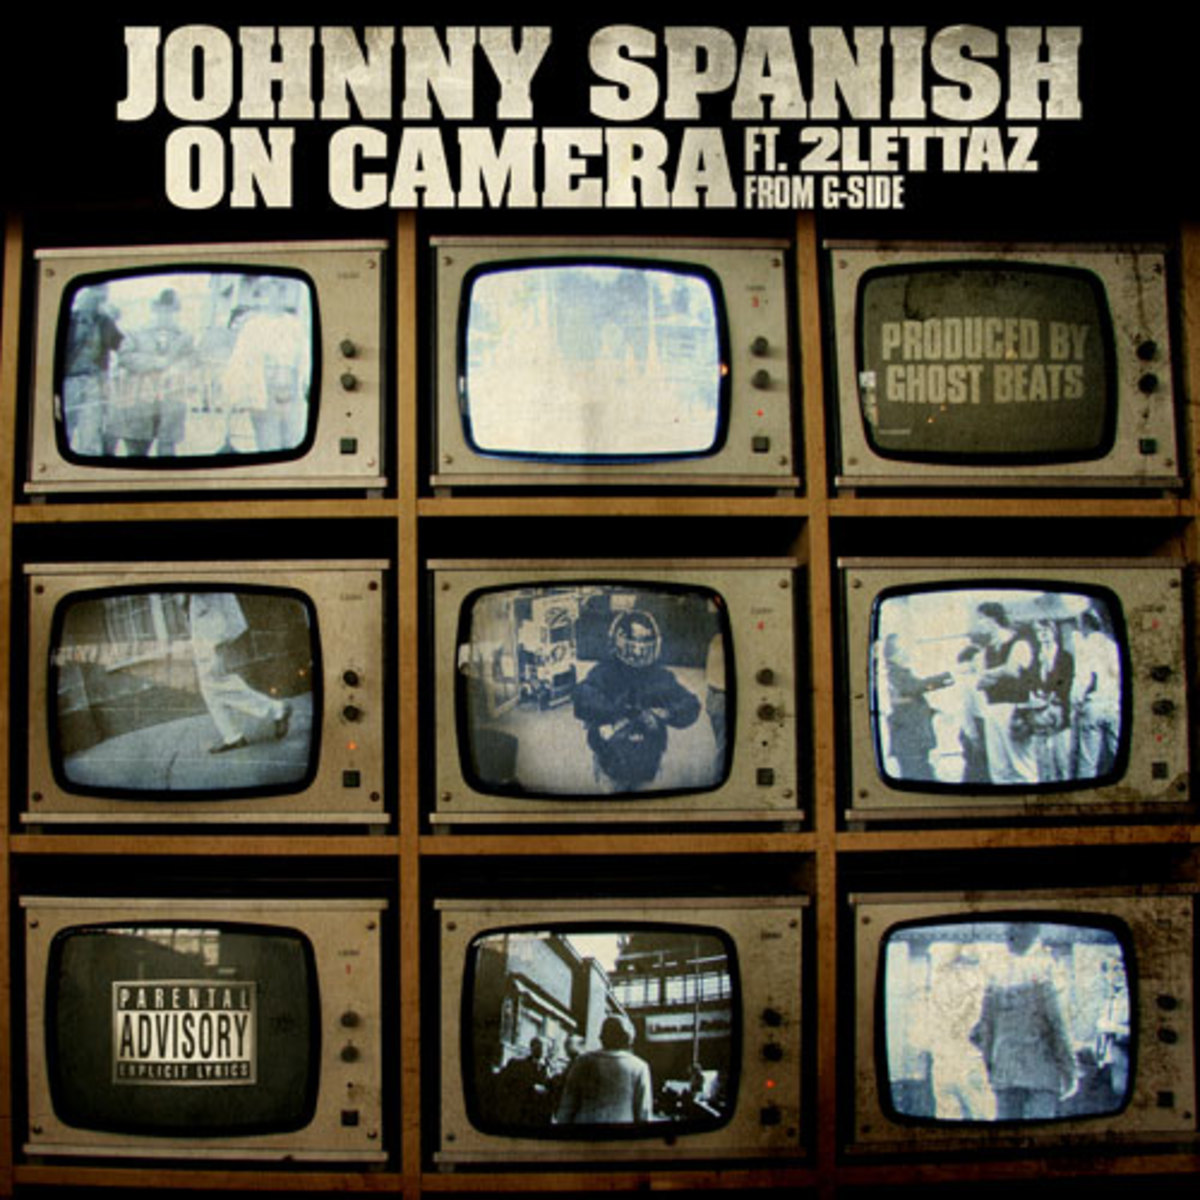 johnnyspanish-oncamera.jpg